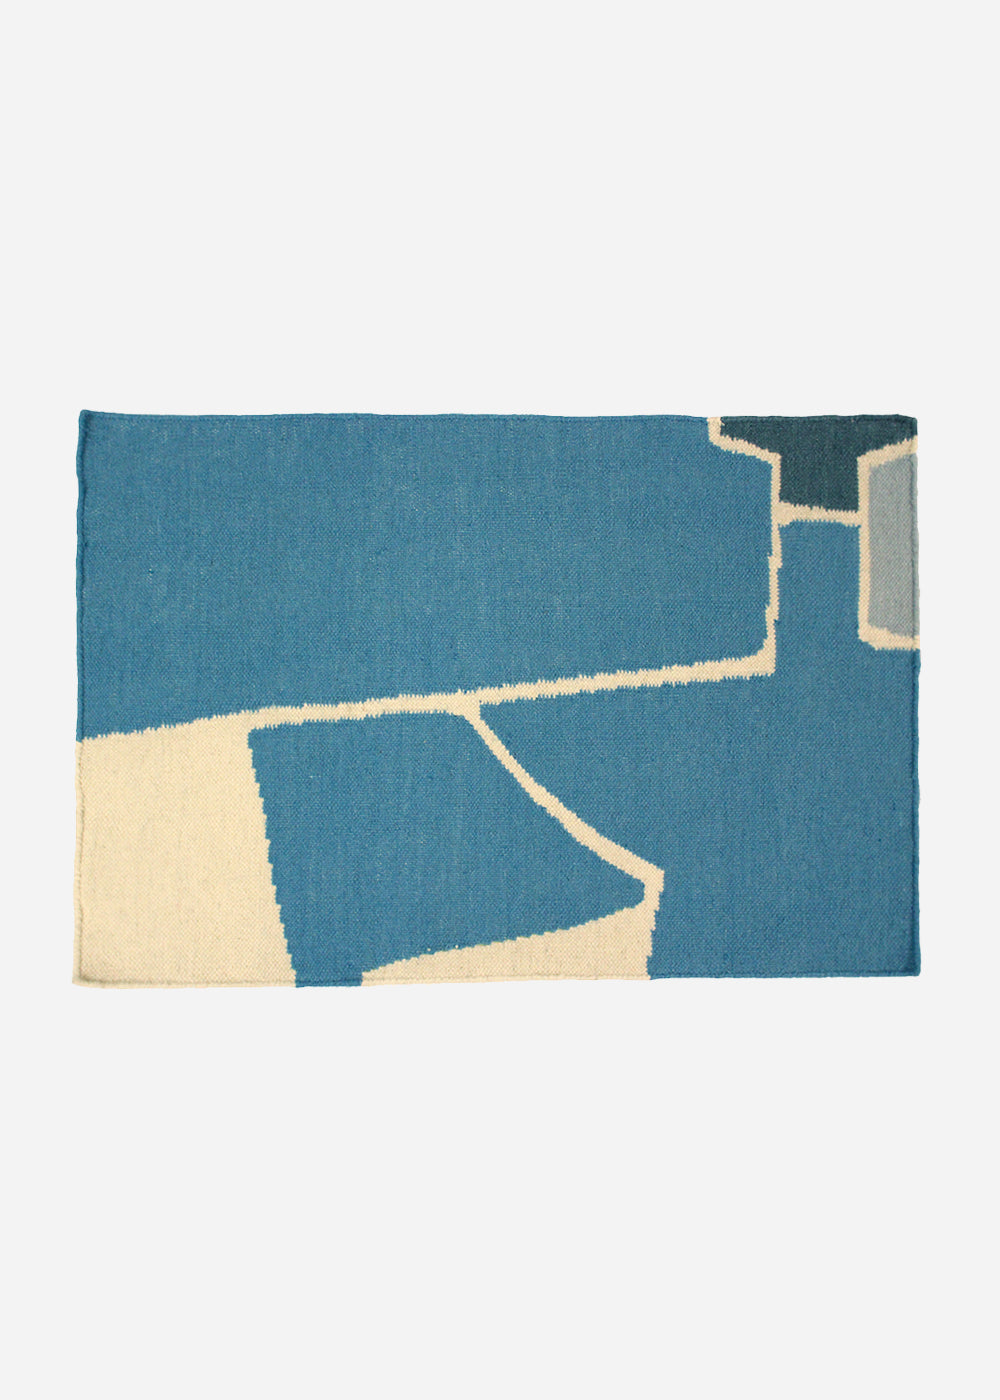 Cold Picnic Four Rivers Flat Weave Rug — Shop sustainable fashion and slow fashion at New Classics Studios